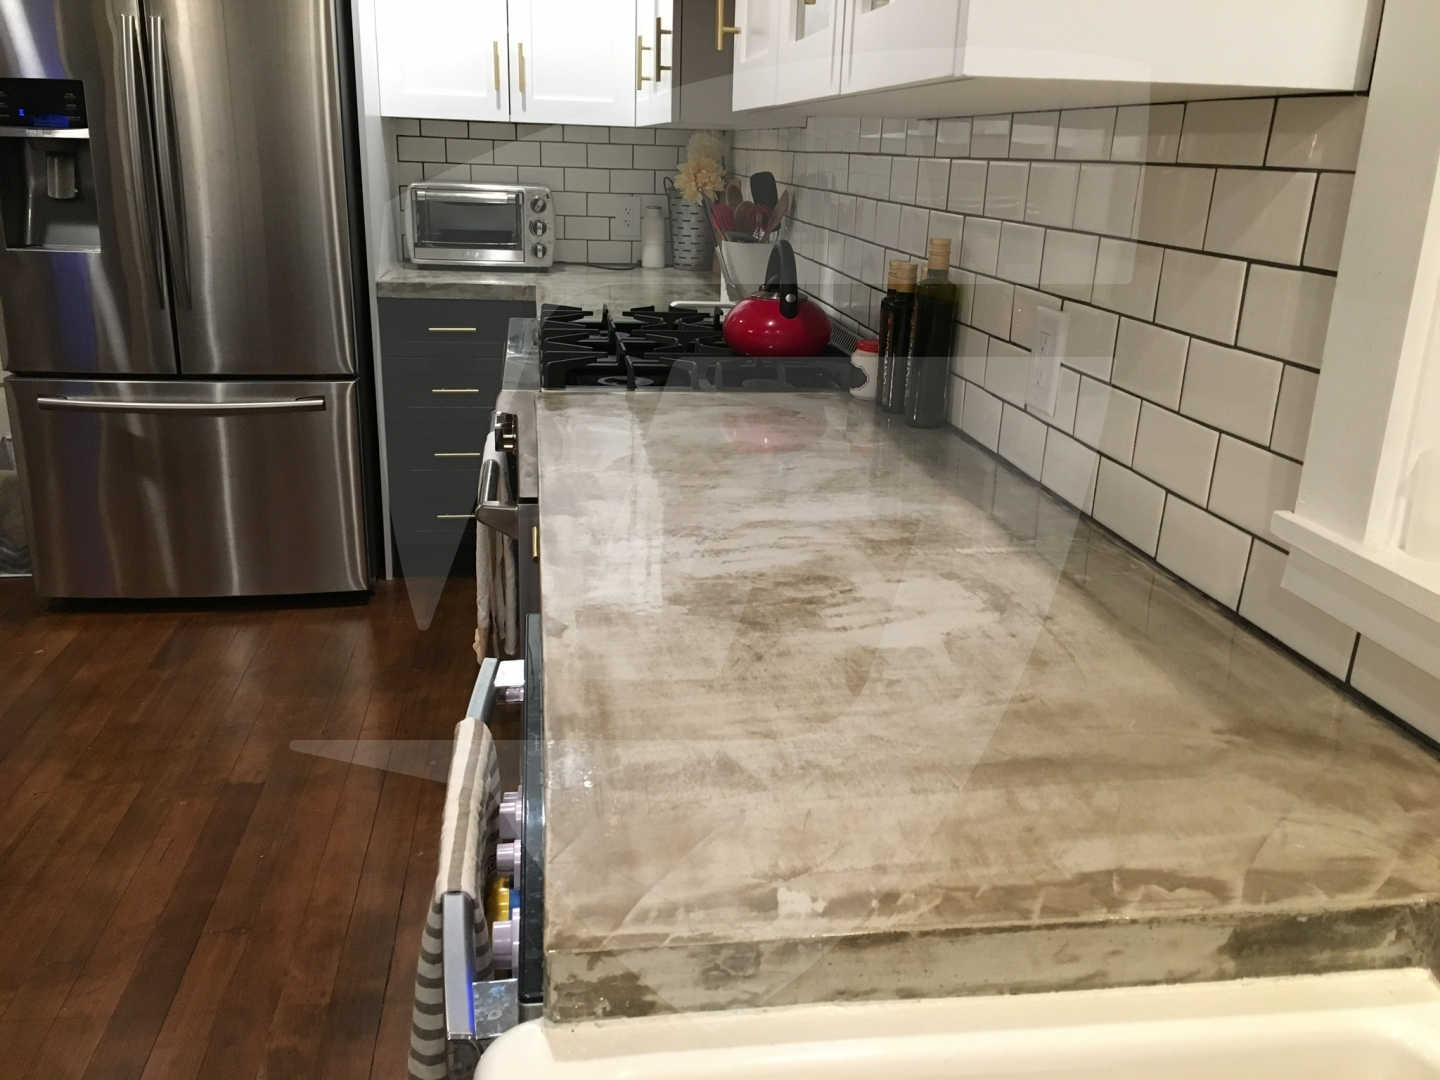 Concrete Countertop Sealers Concrete Countertop Sealer Ghostshield Concrete Sealers